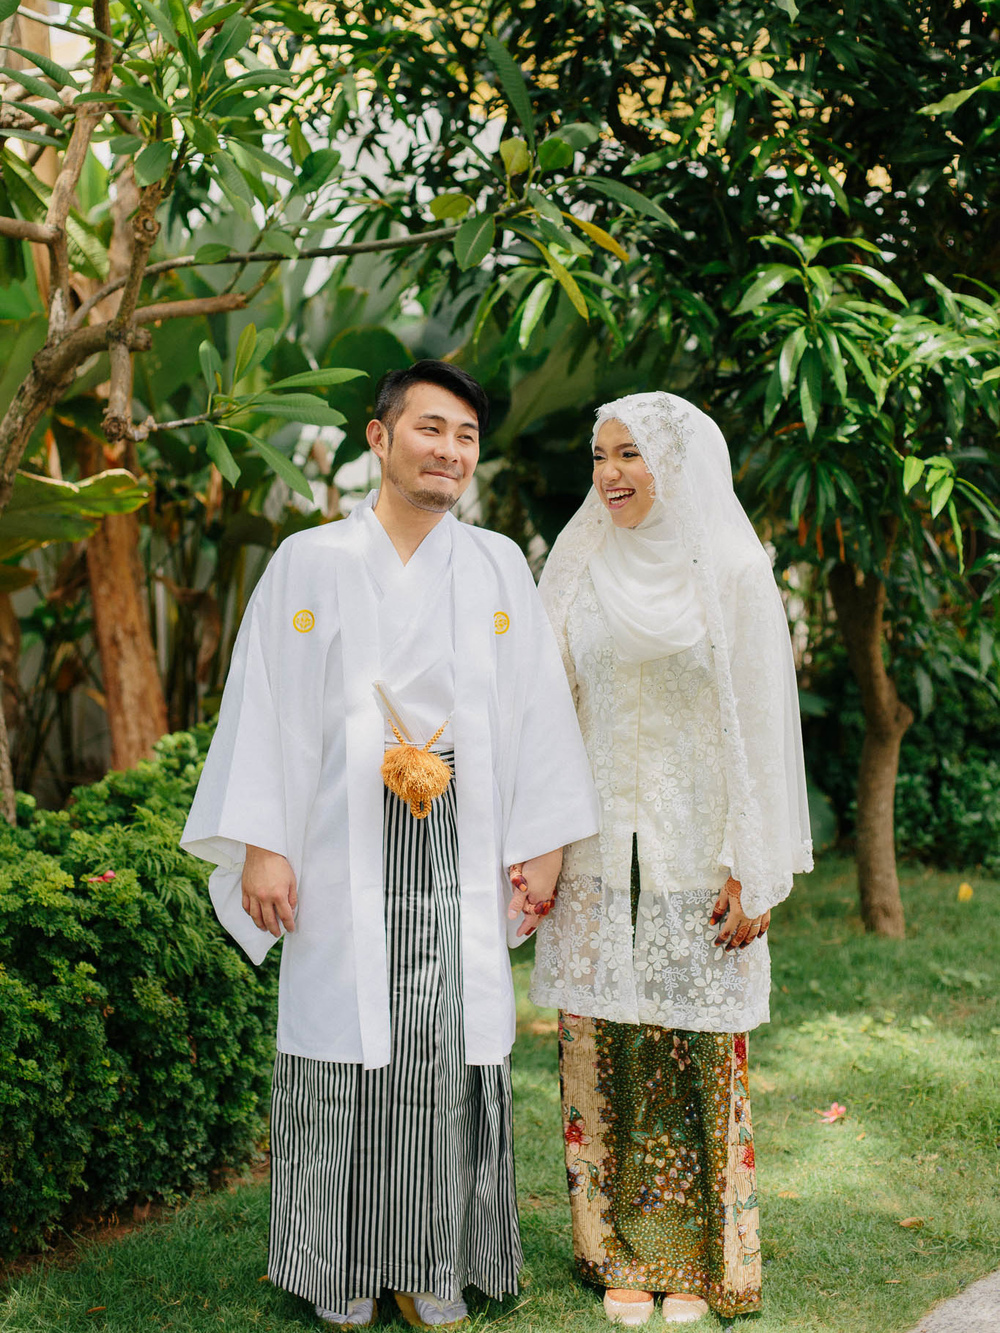 singapore-wedding-photographer-travel-wemadethese-atara-hafizah-31.jpg